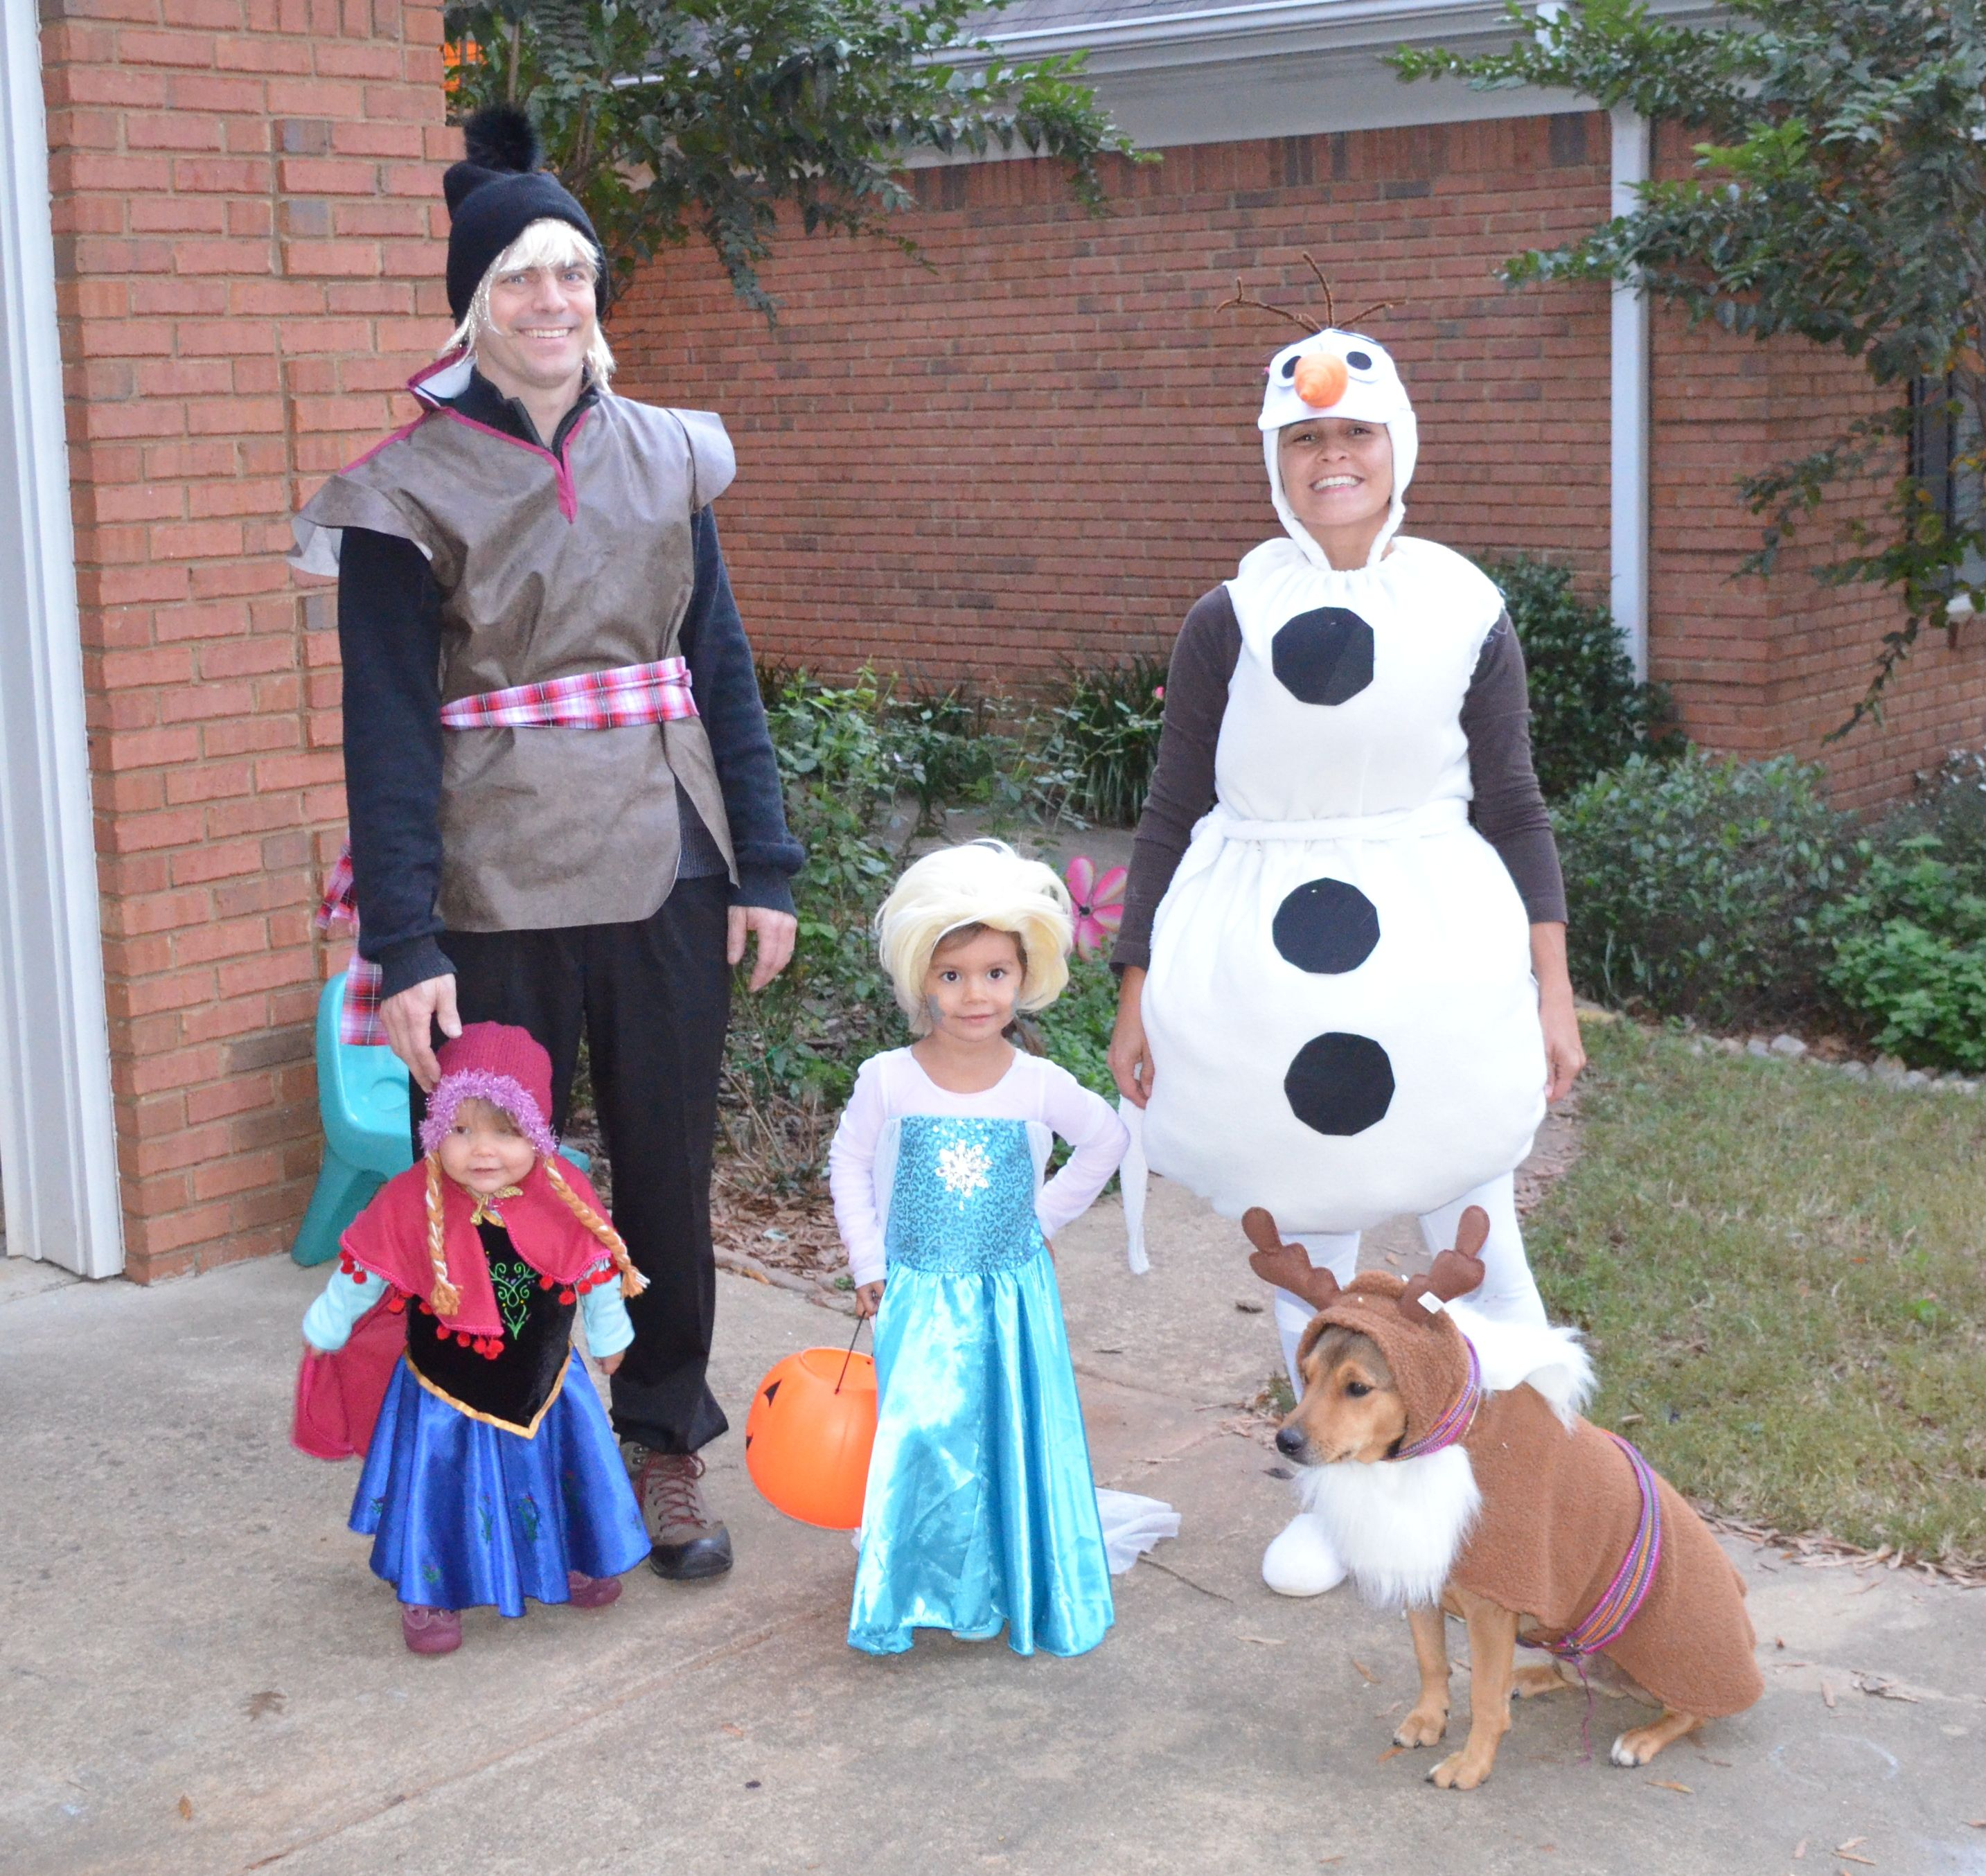 Family costume frozen, elsa, olaf, anna, kristoff and sven dog costume